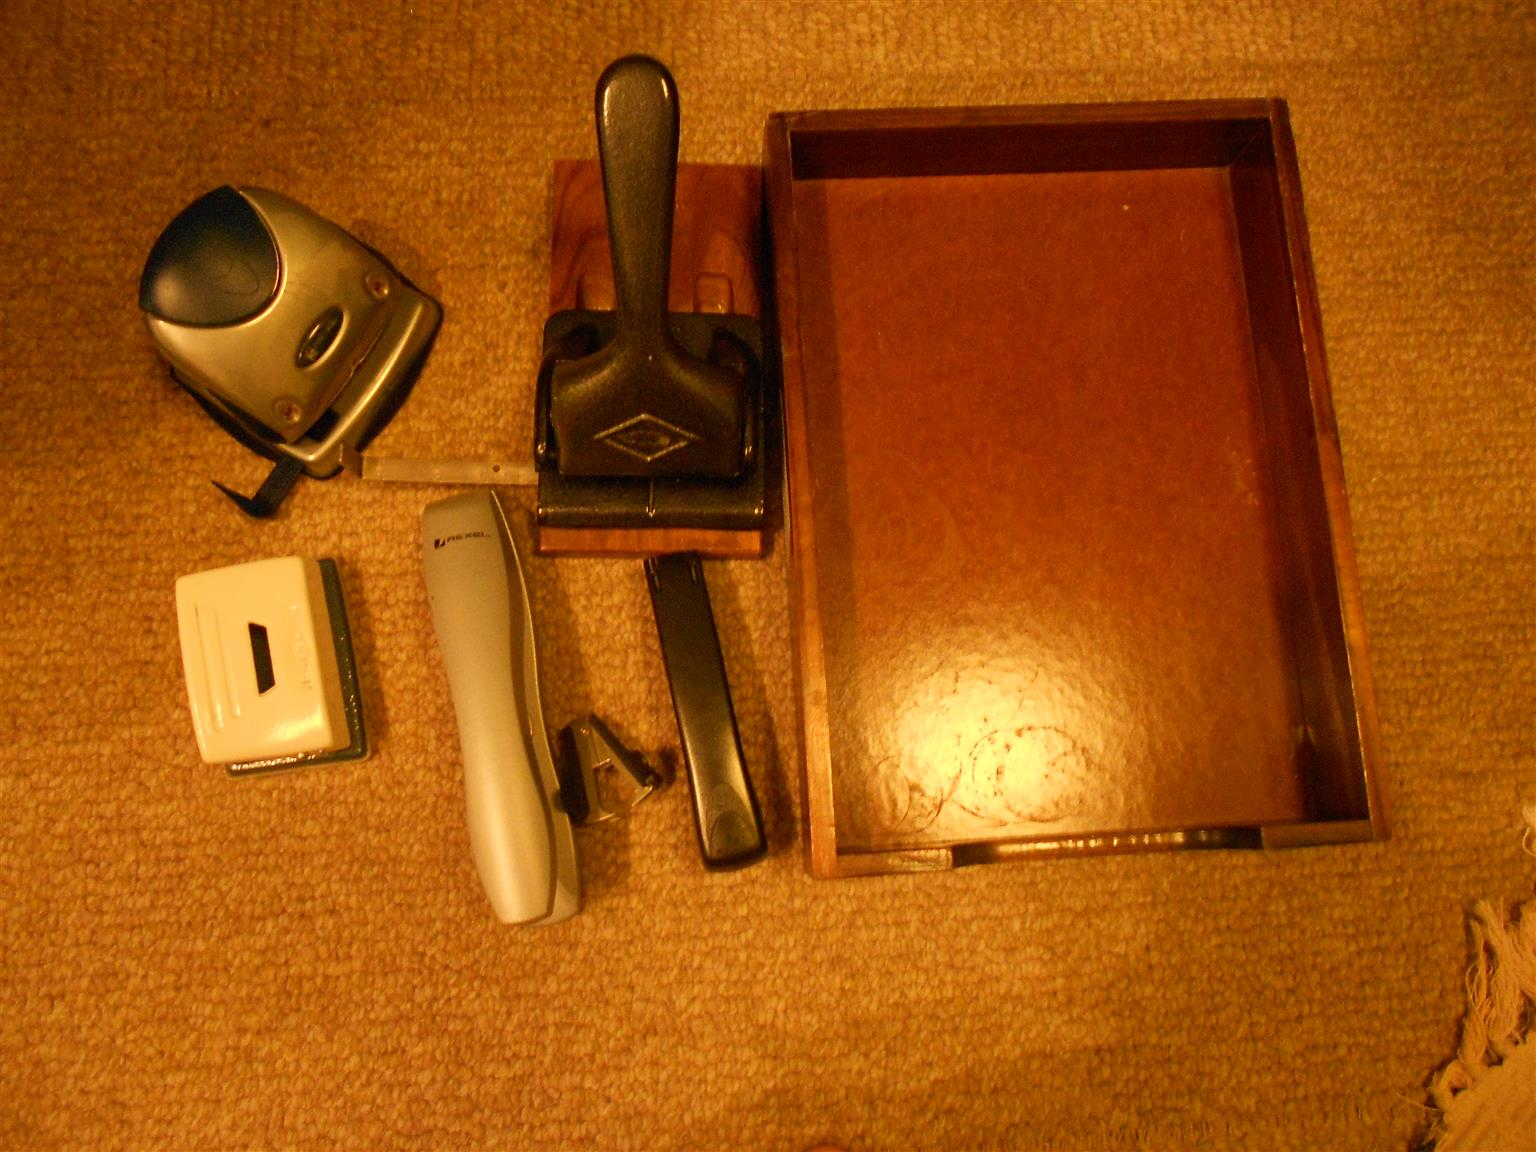 Variety of Office Supplies - including projector